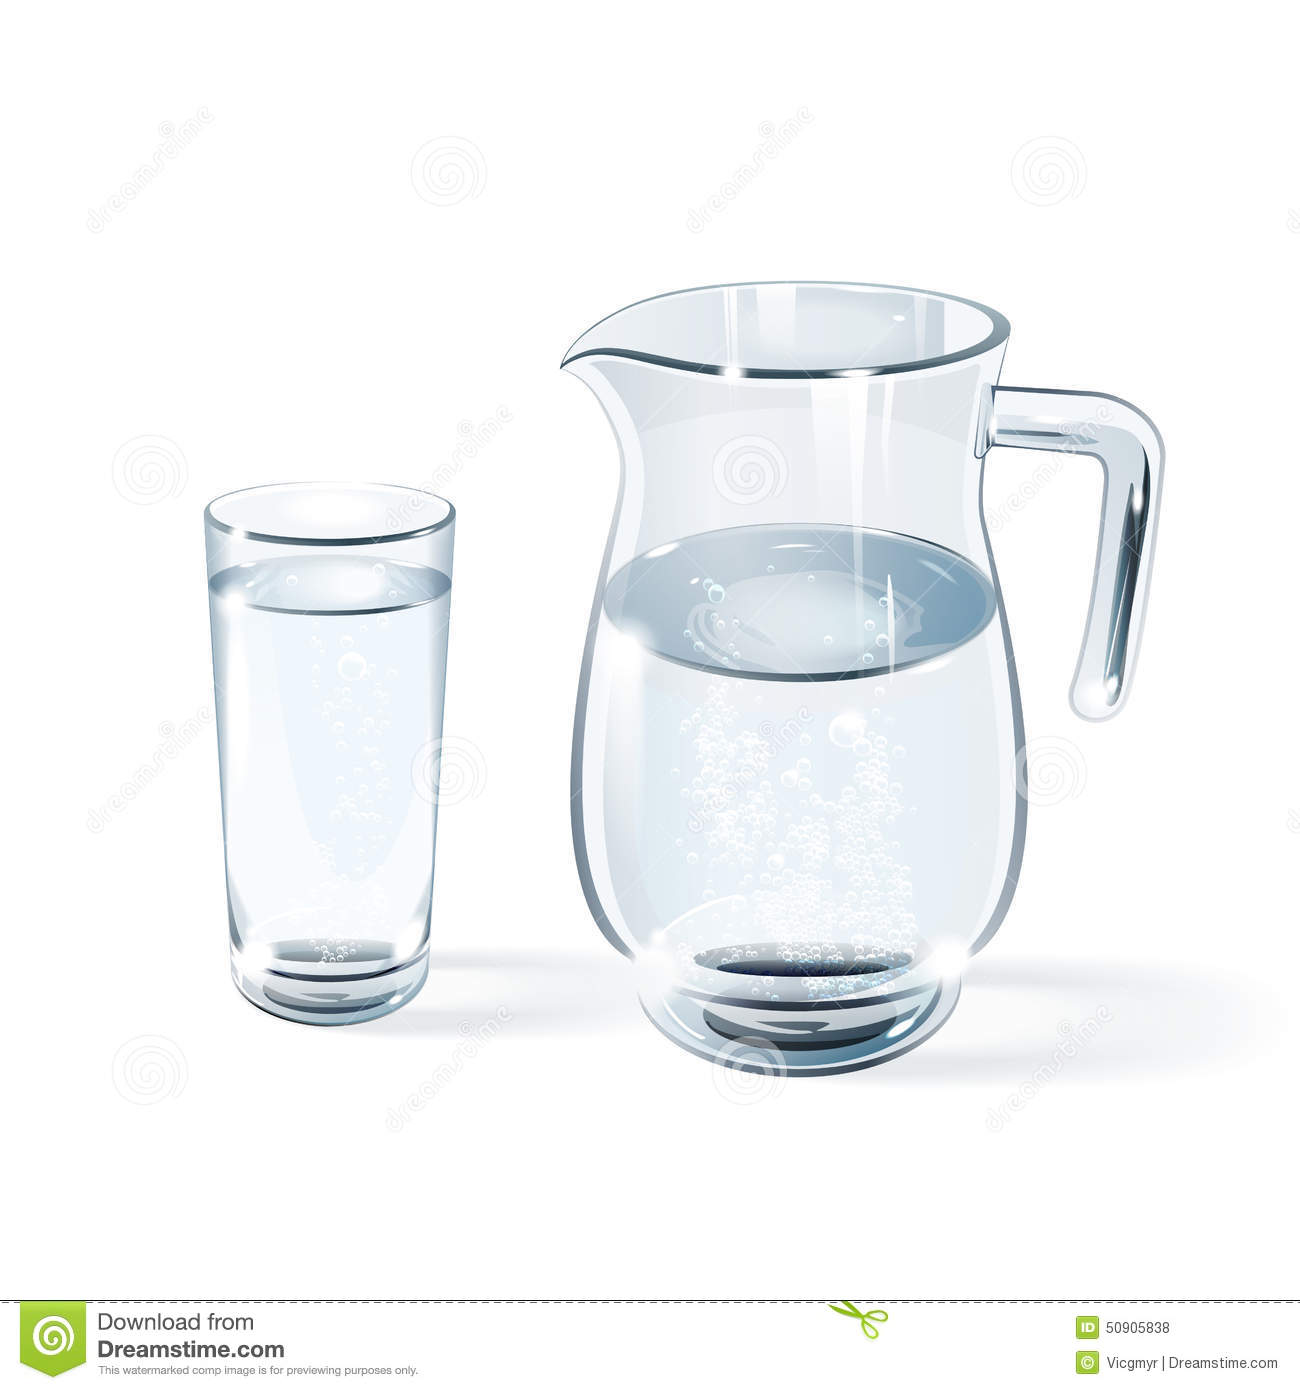 glass of water and glass jug stock vector  image  - glass of water and glass jug stock vector